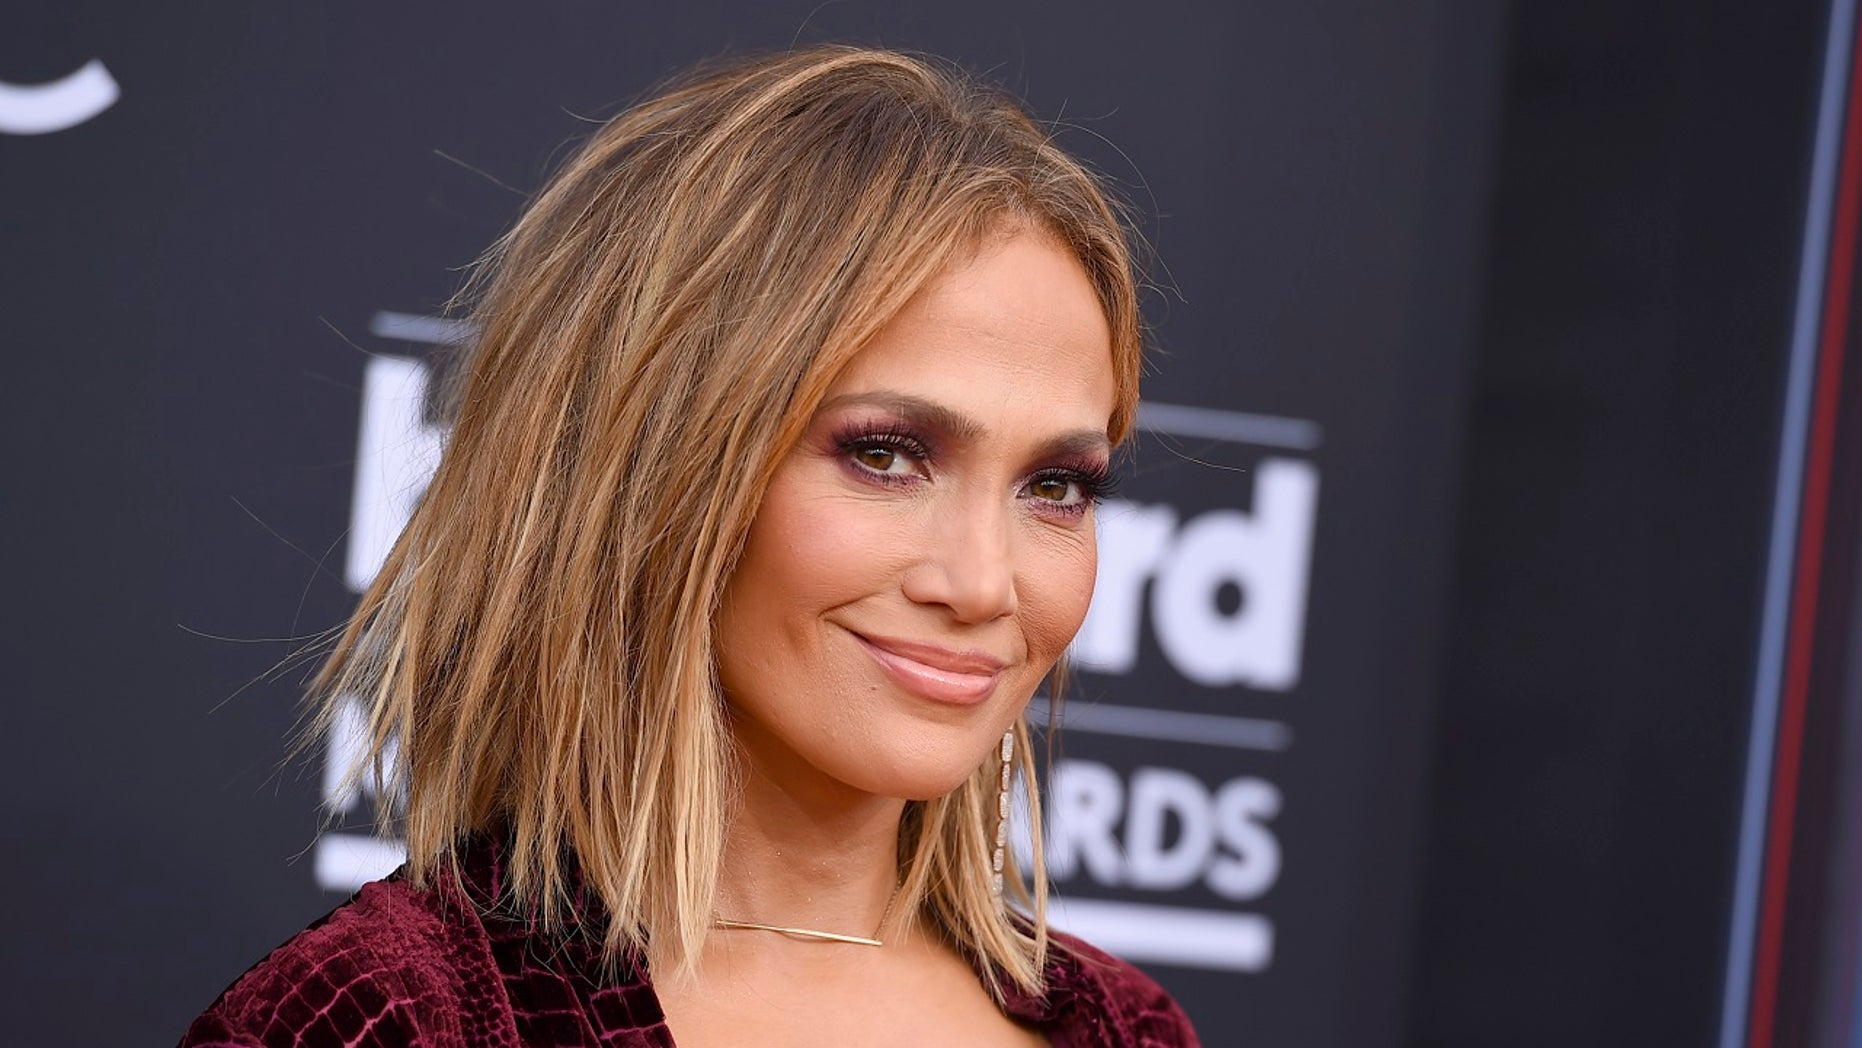 Consider, that j lo jennifer lopez nude think, that